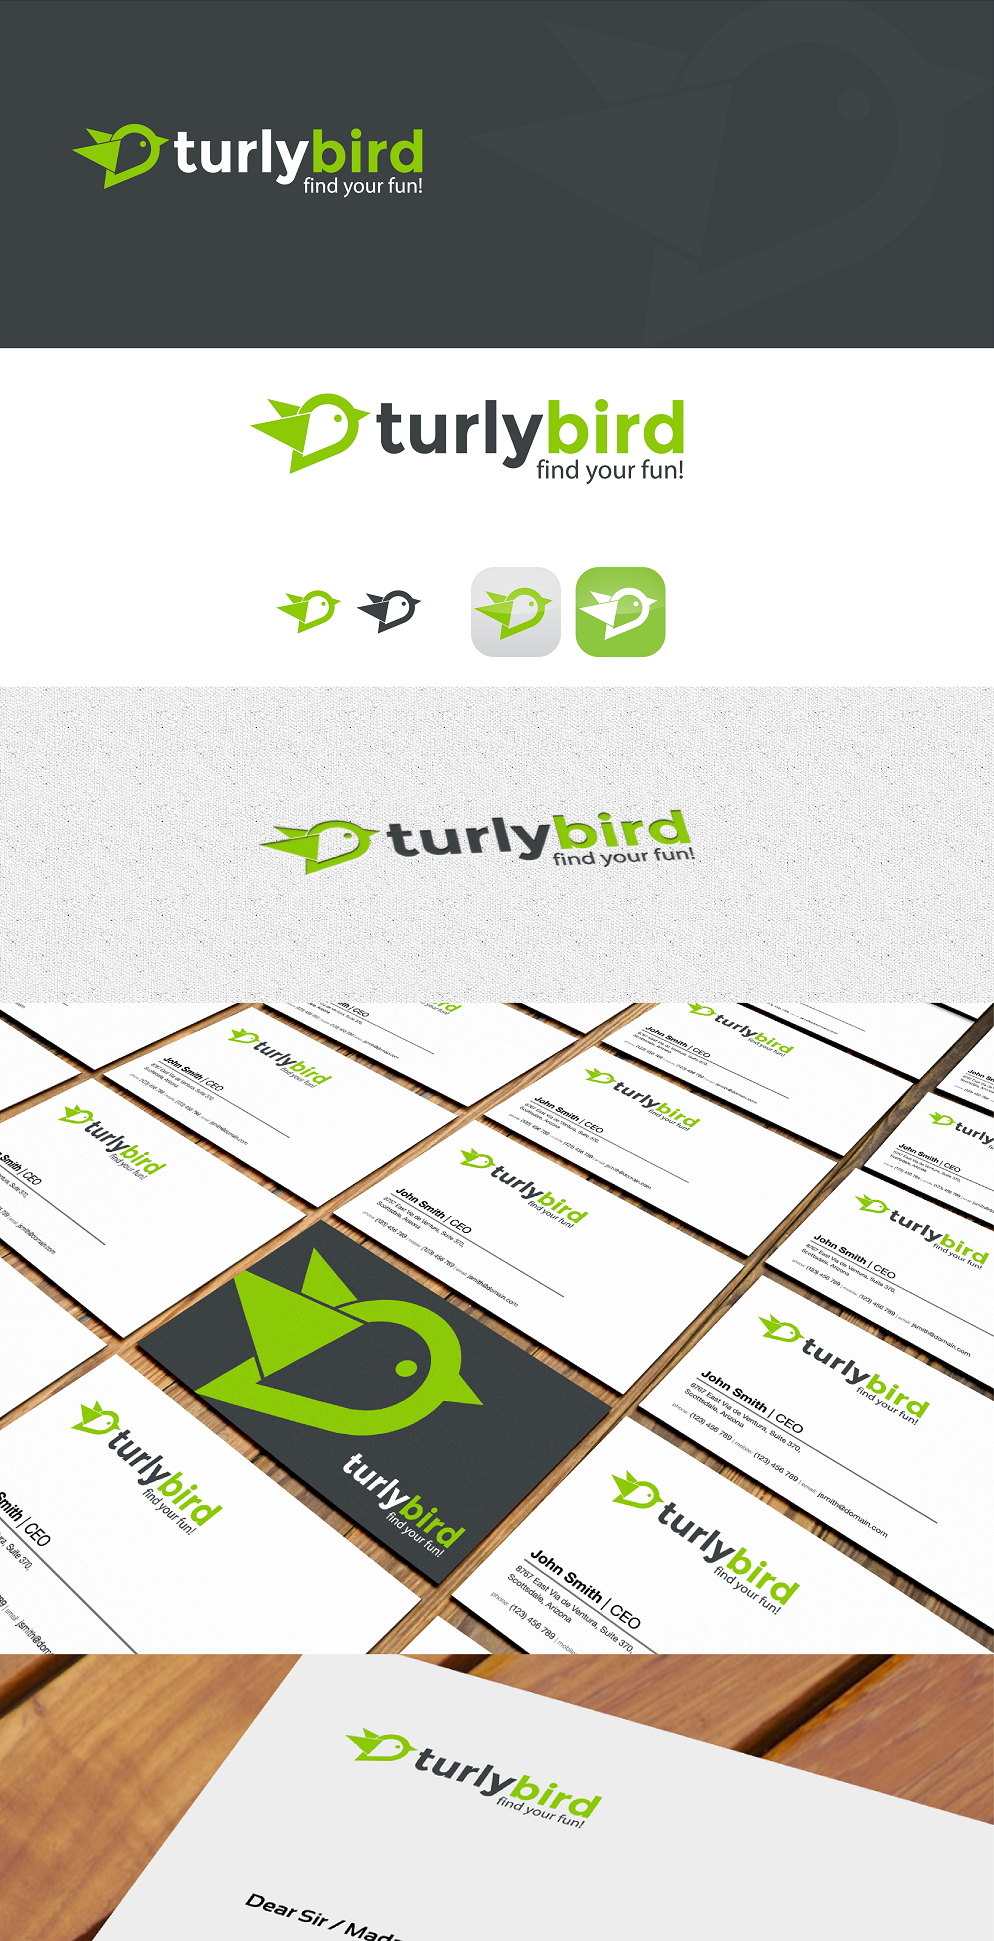 Create a unifying brand identity for the turlybird widget, website and mobile app.